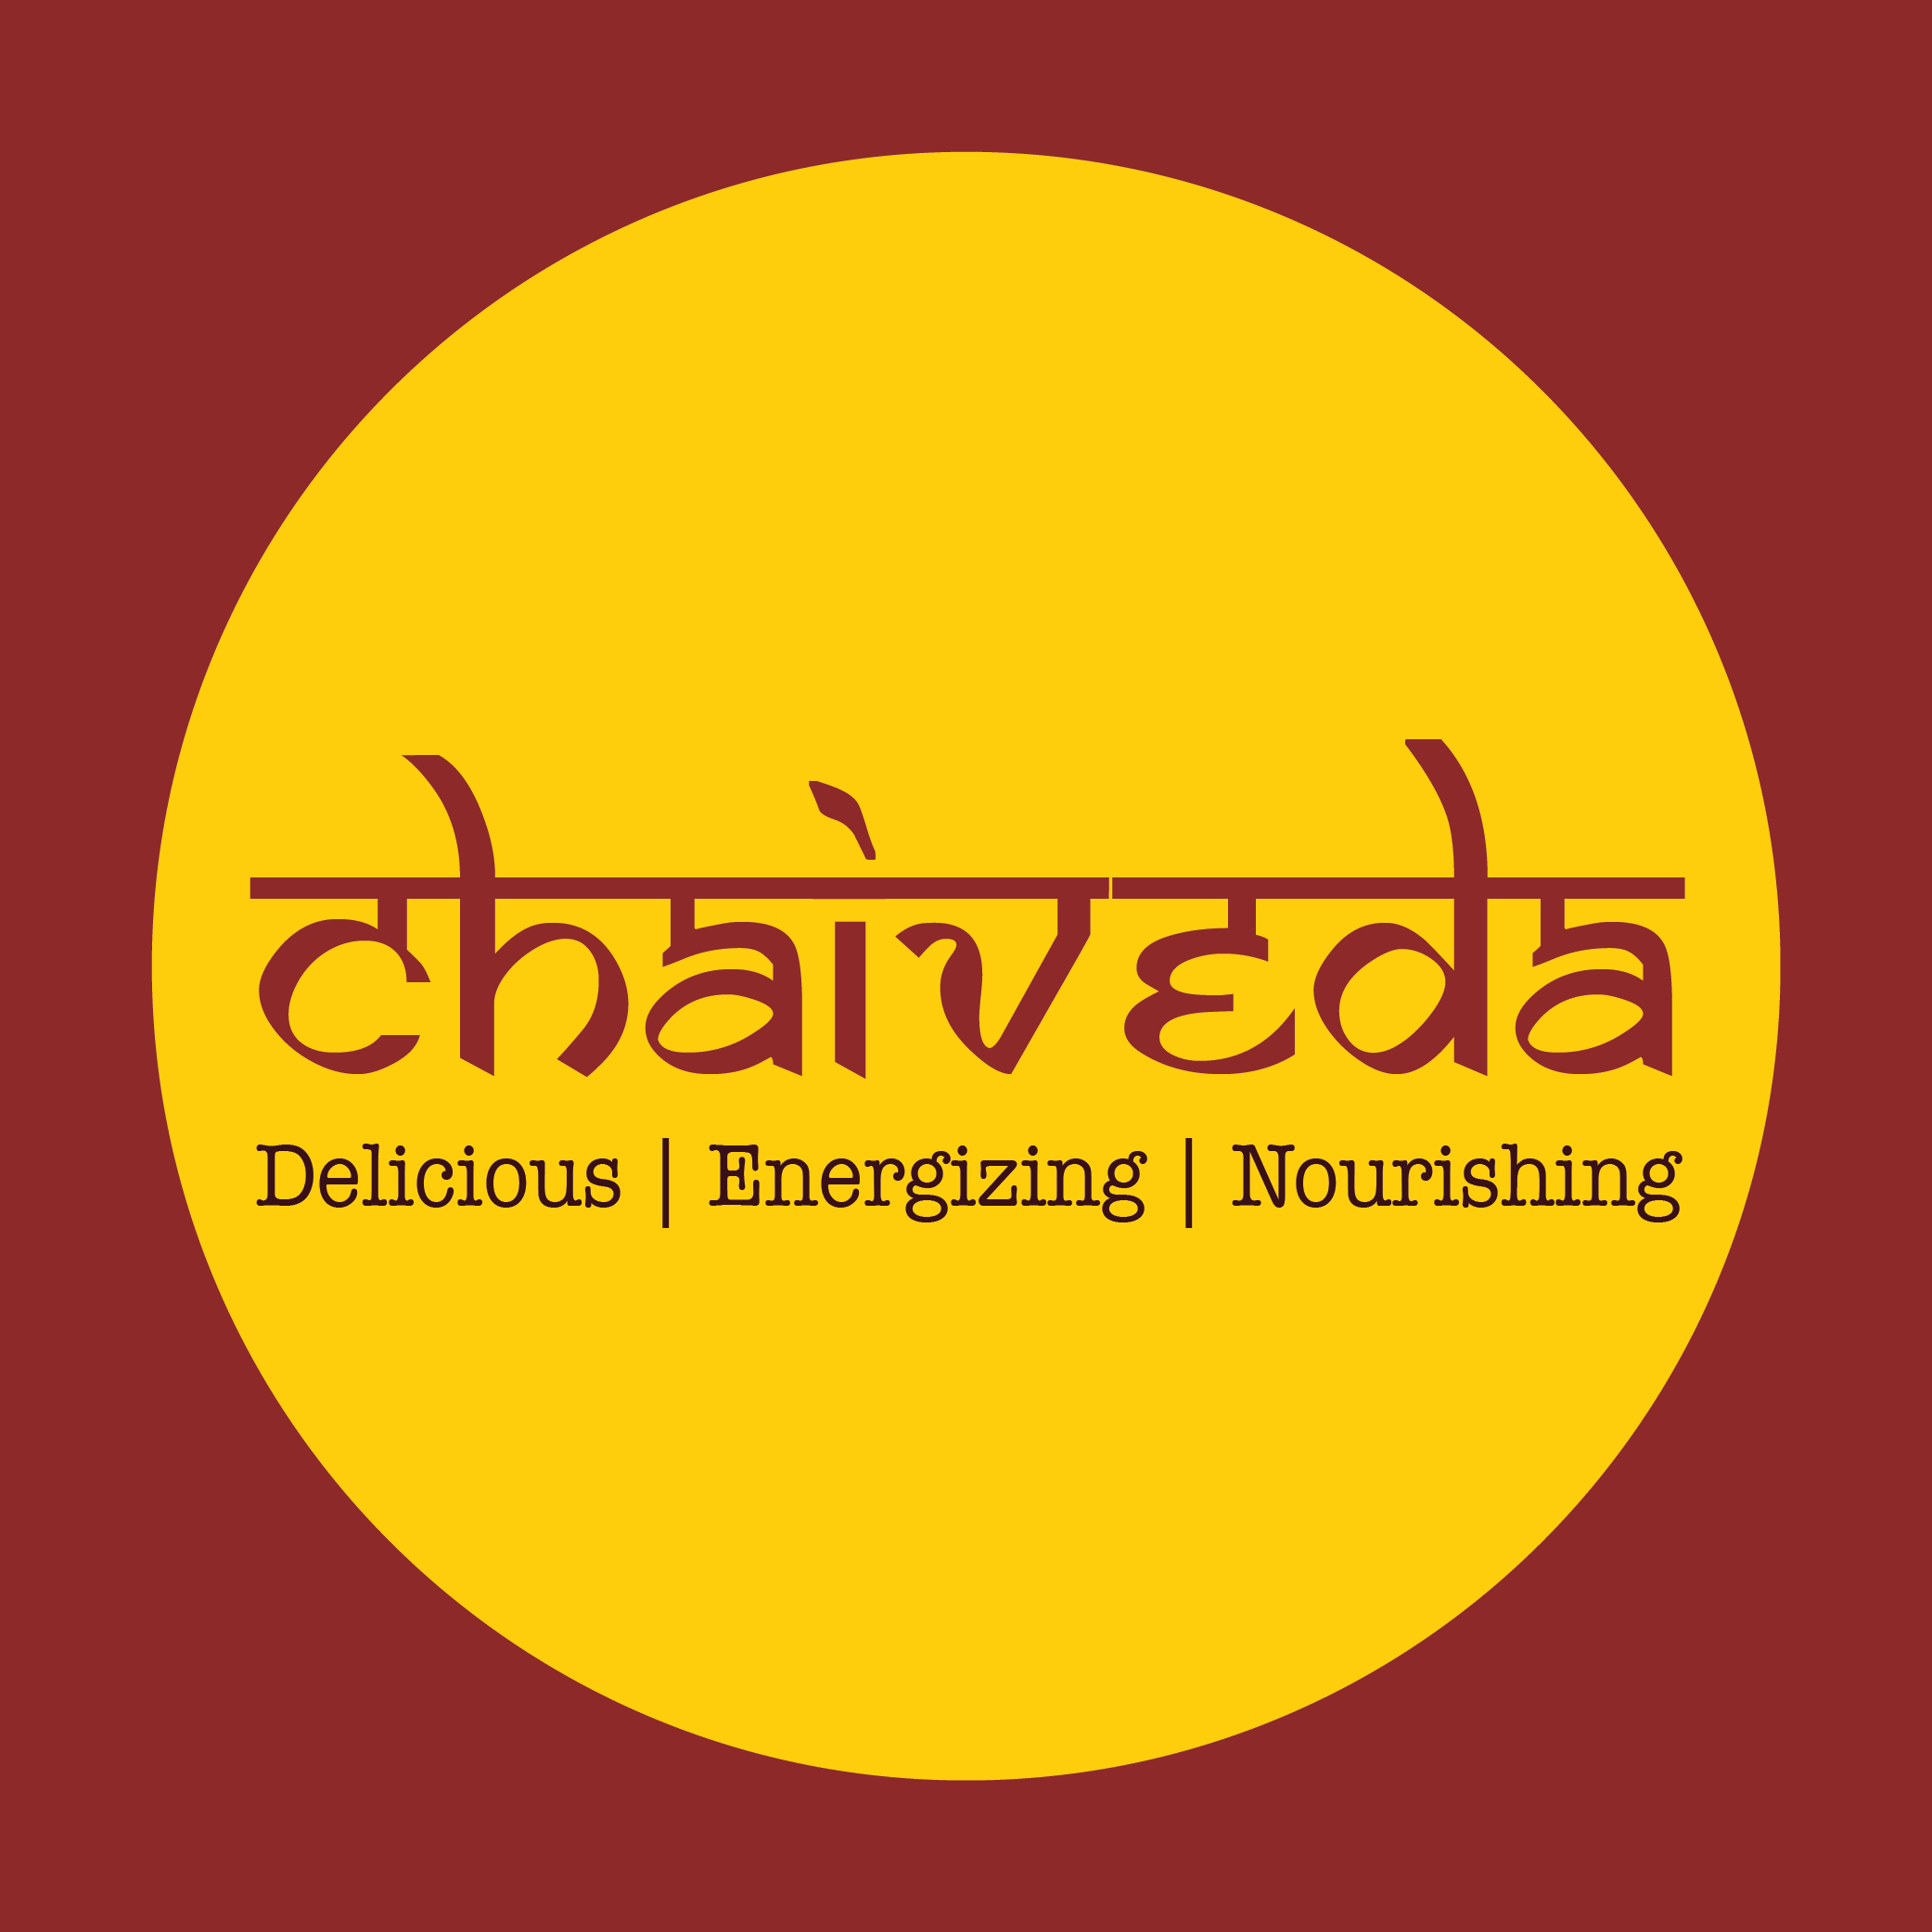 https://www.chaiveda.in